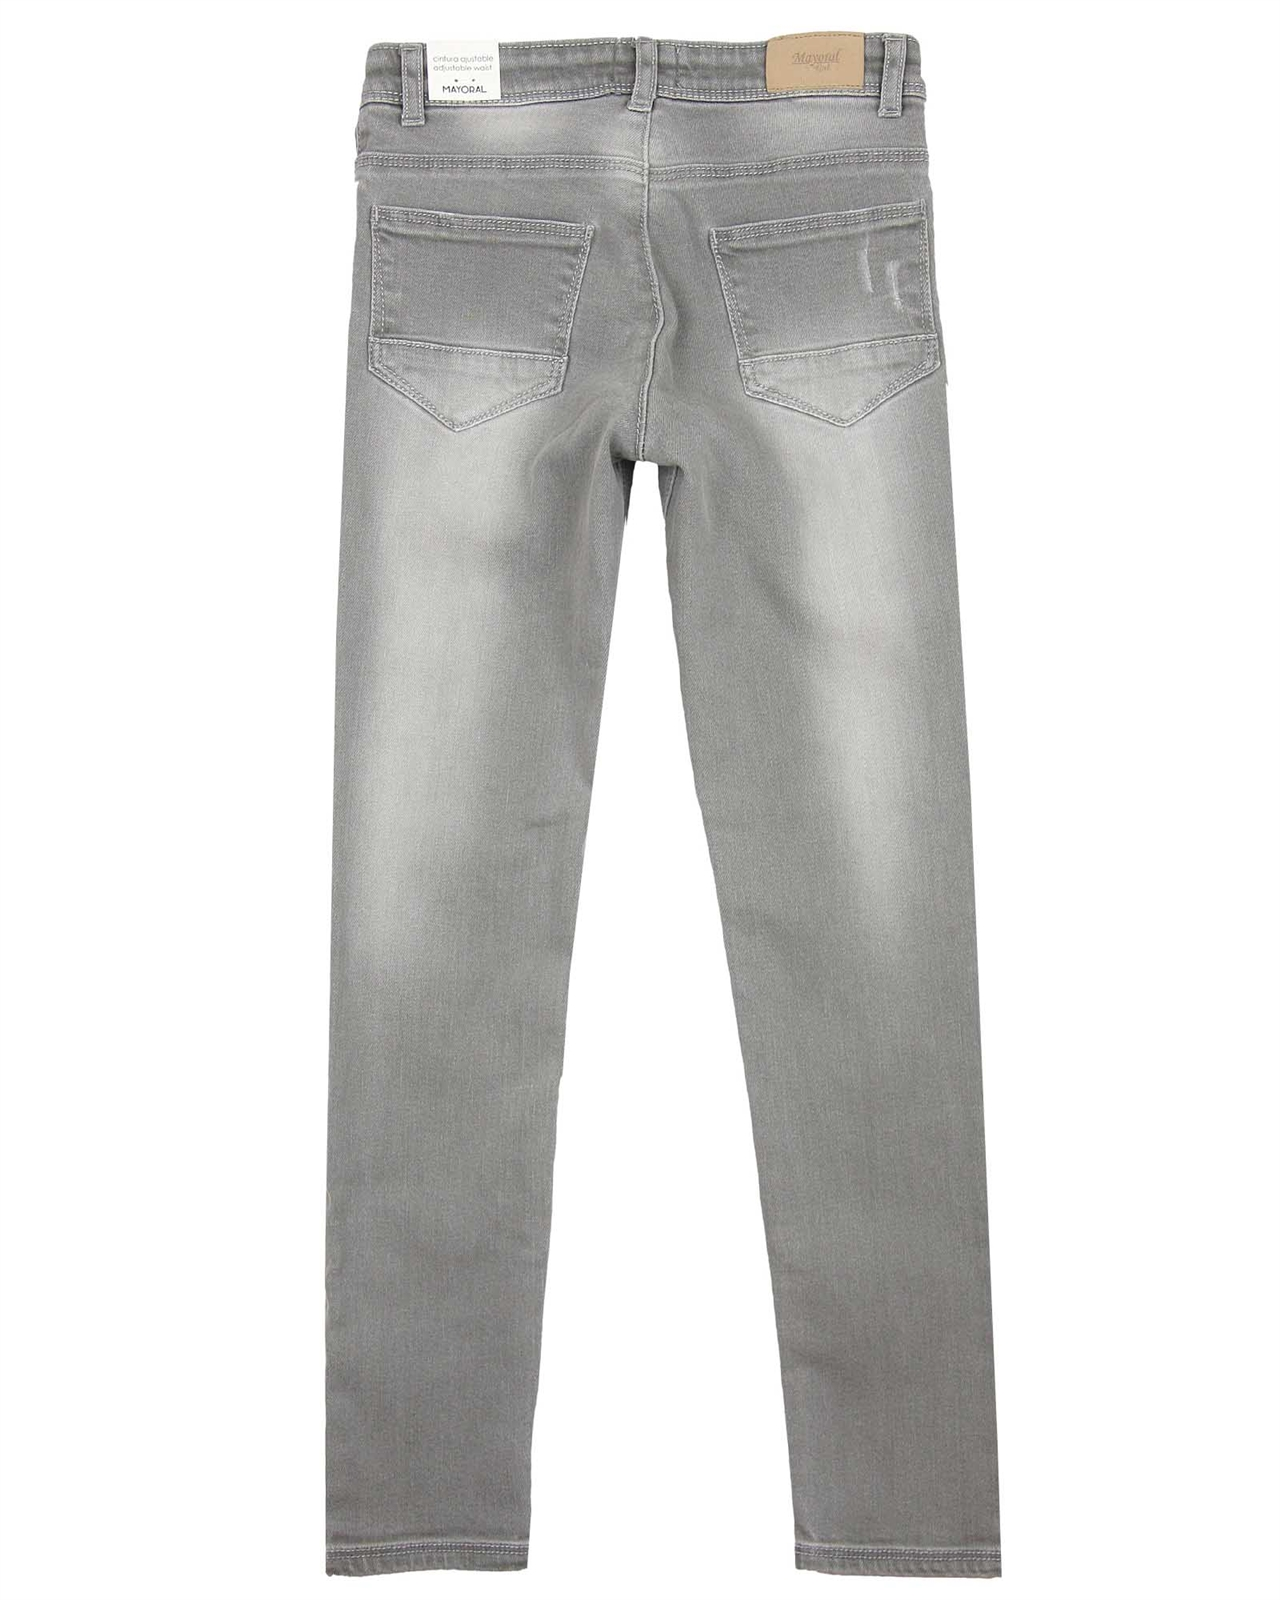 Mayoral Junior Girls Gray Denim Pants with Jewels Sizes 8-18